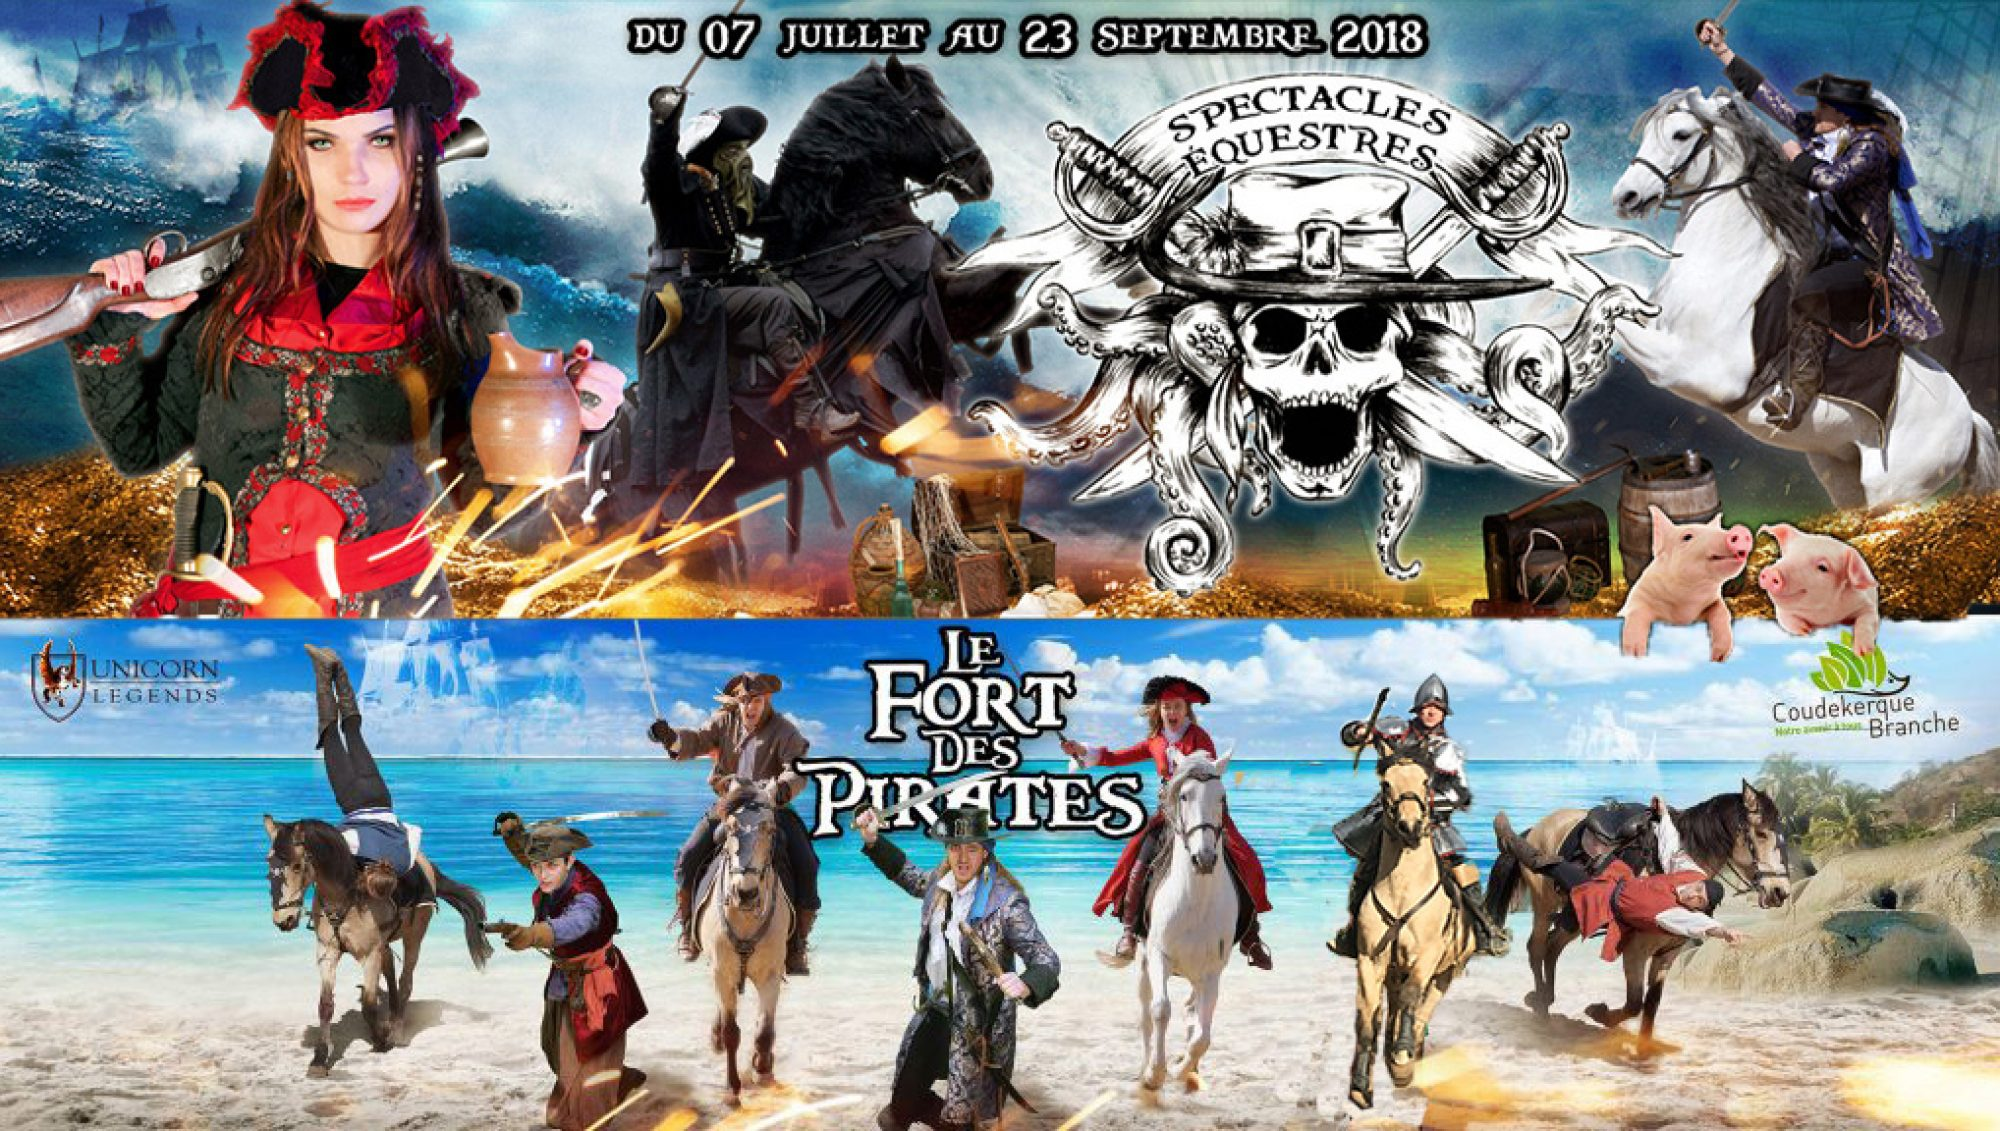 Le Fort des Pirates